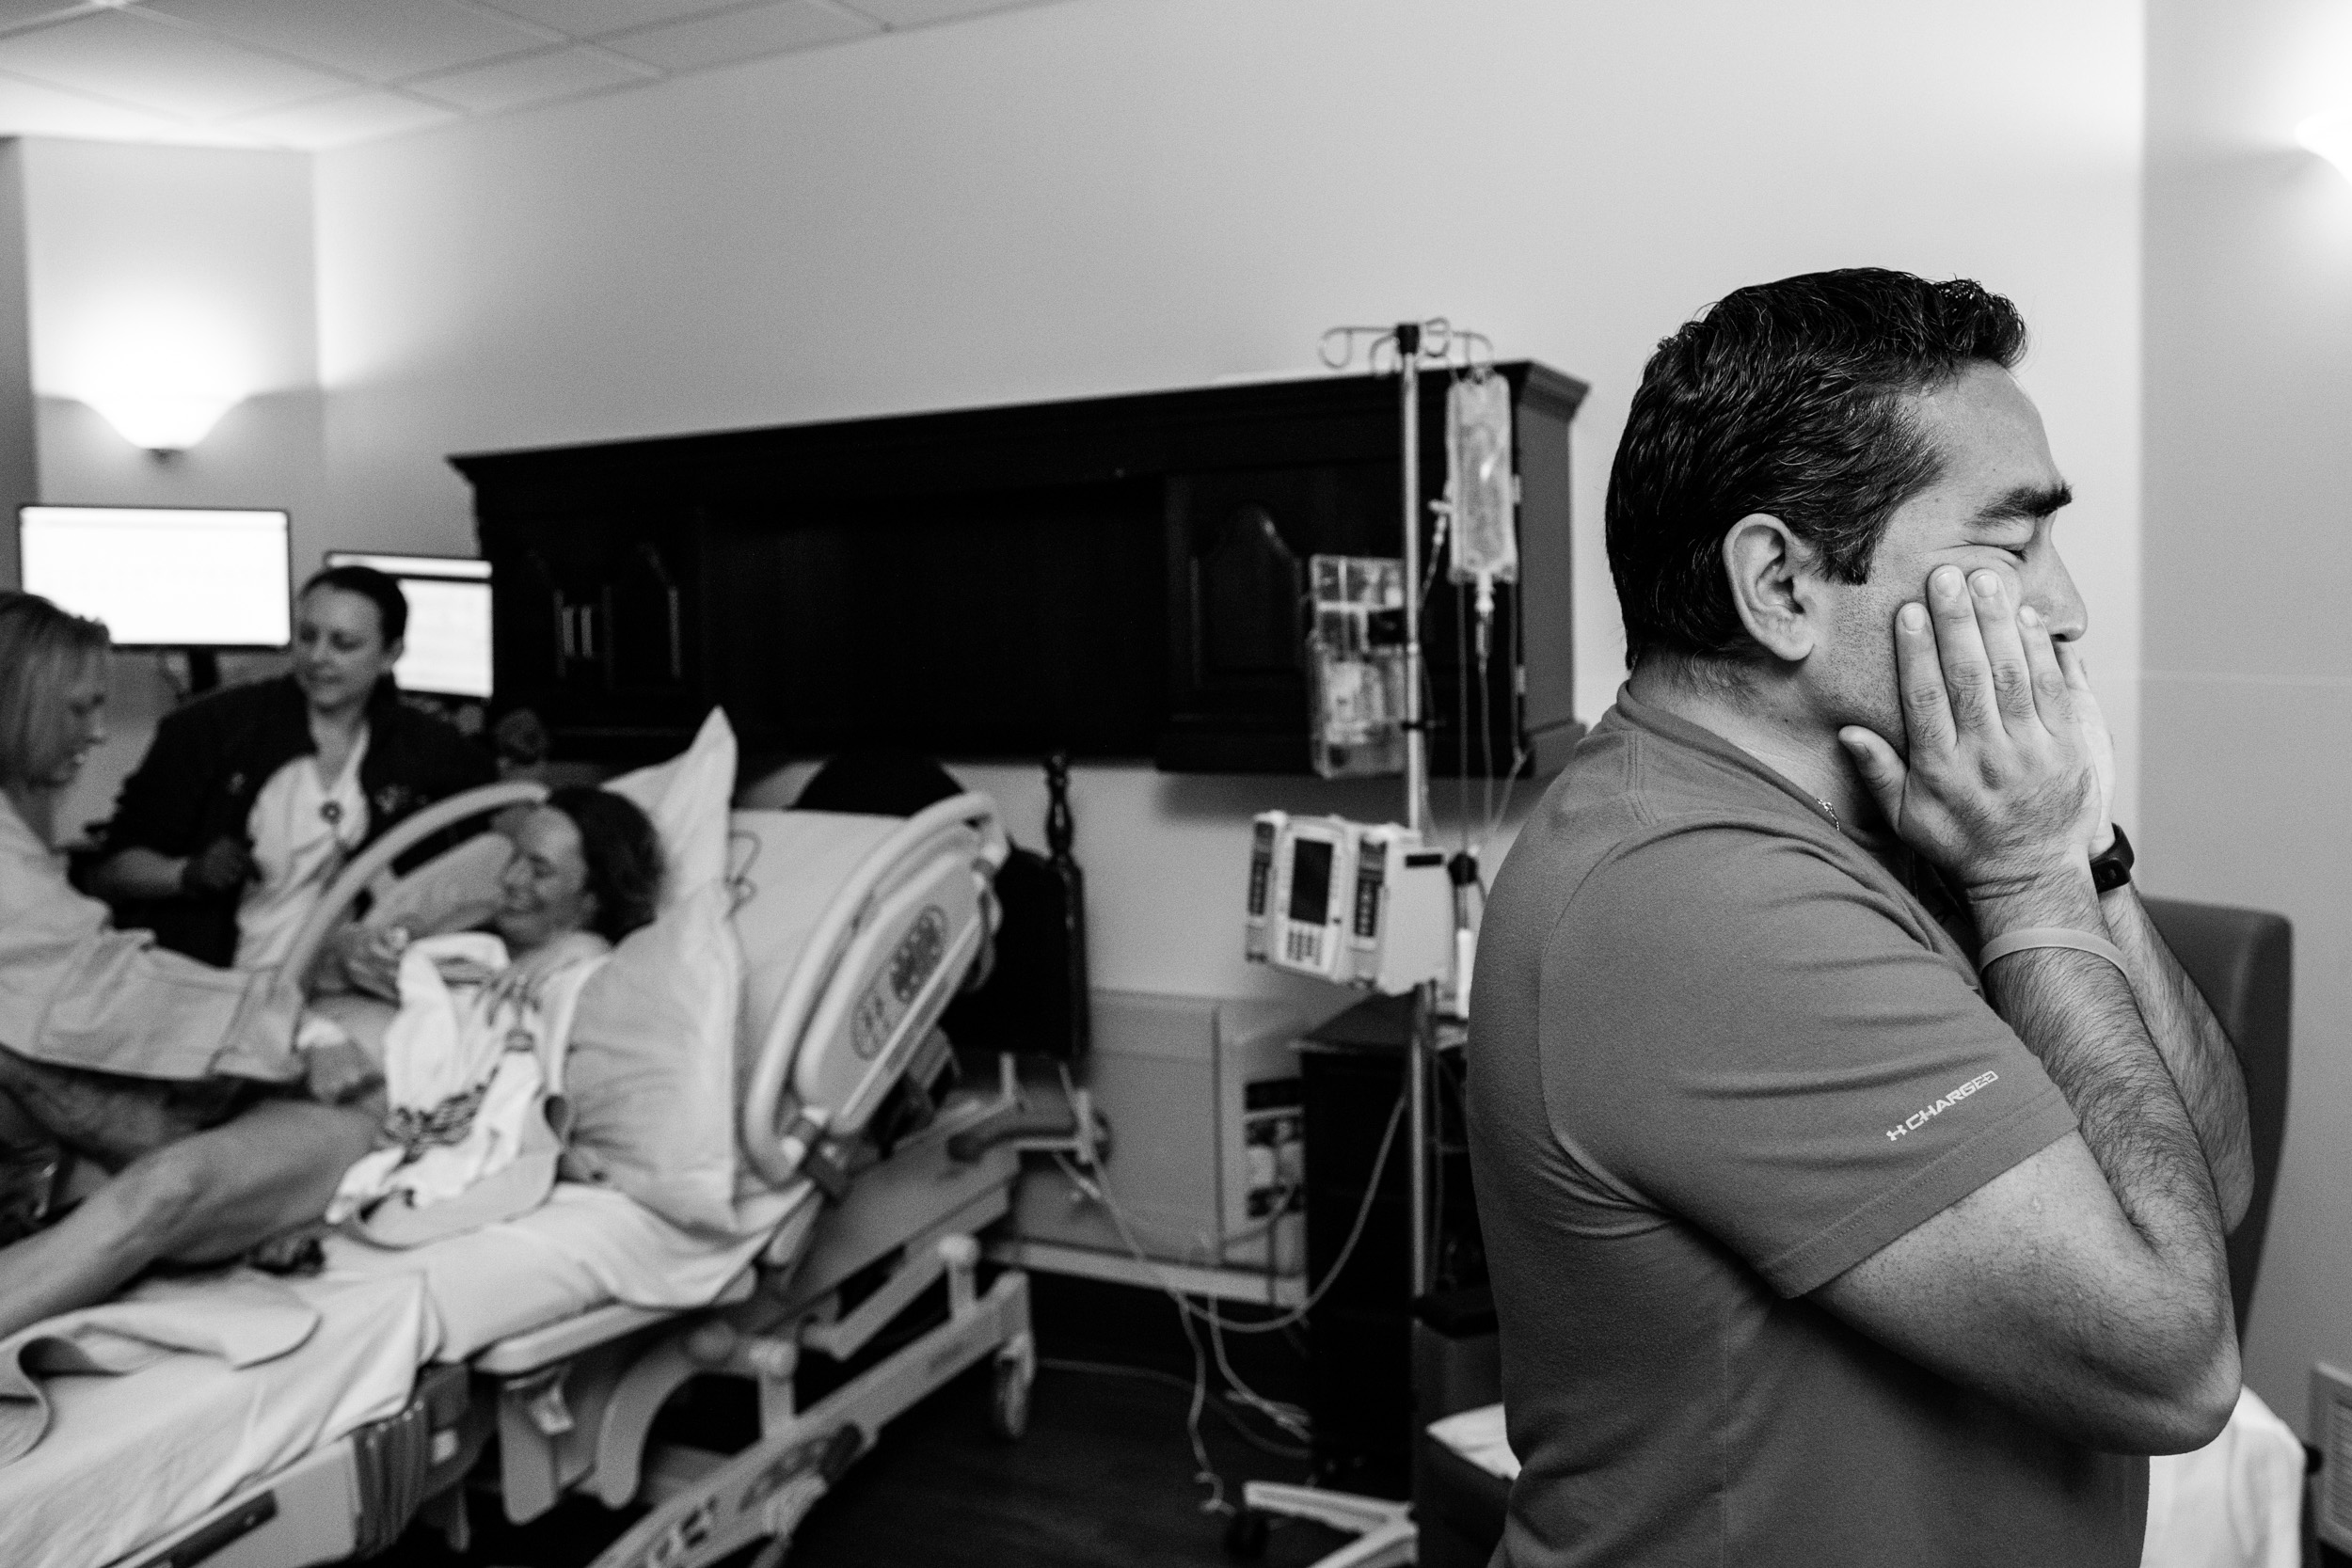 dad overcome with emotion after birth puts his hands on his face